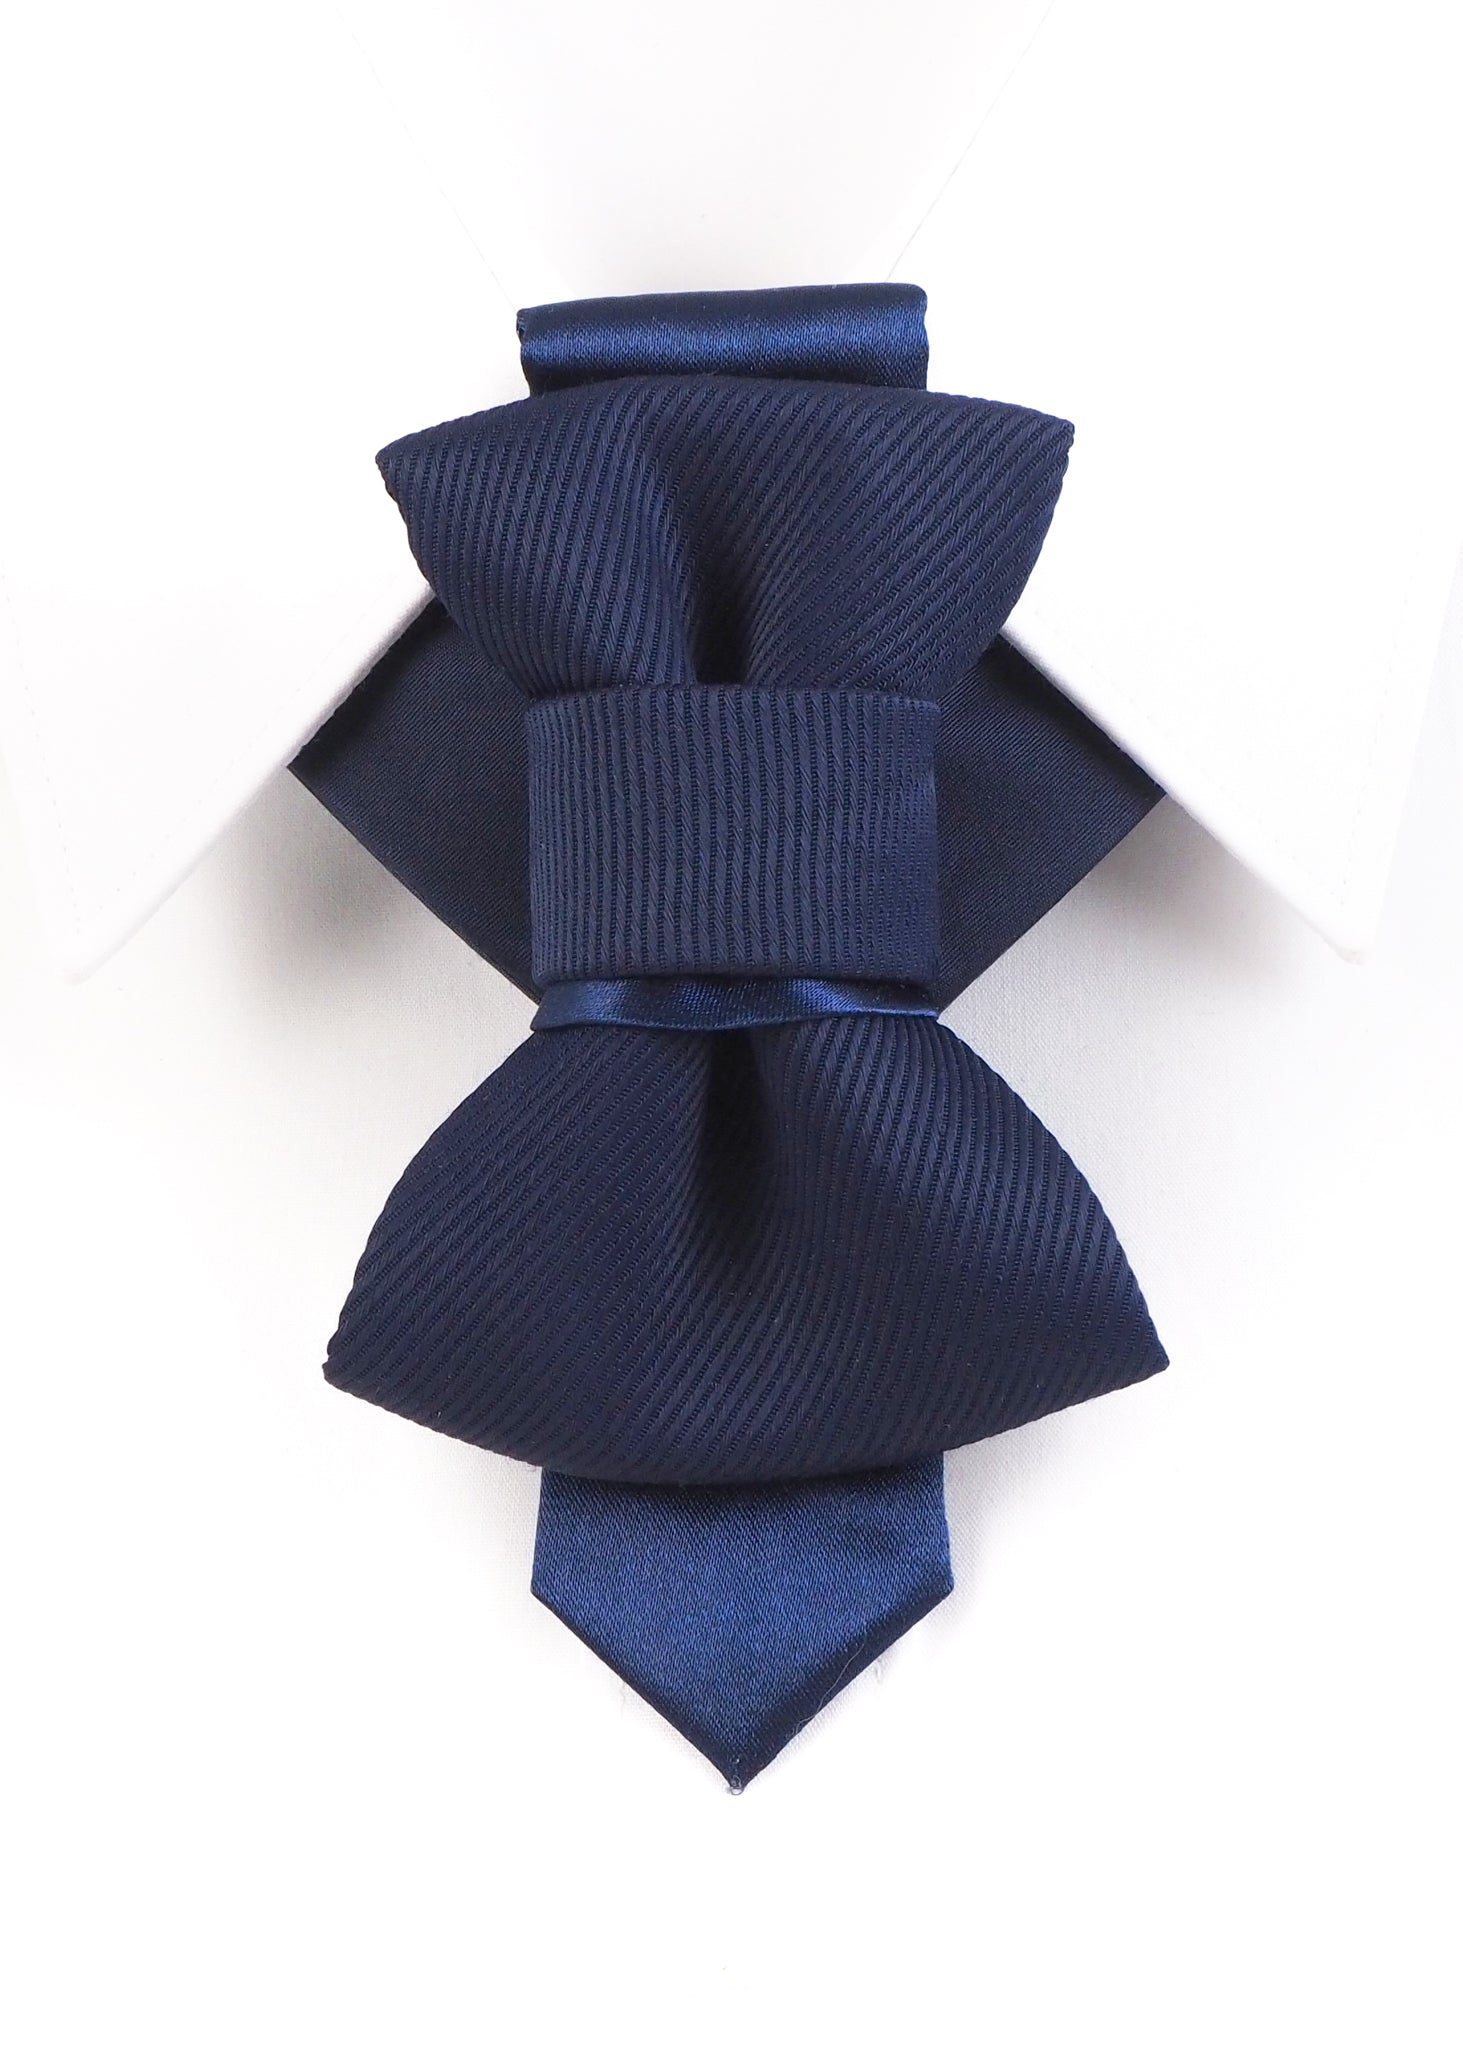 Bow Tie, Tie for wedding suite GOAL hopper tie Bow tie, Ruty Design hopper tie, Vilnius tie, Lithuanian Hopper tie